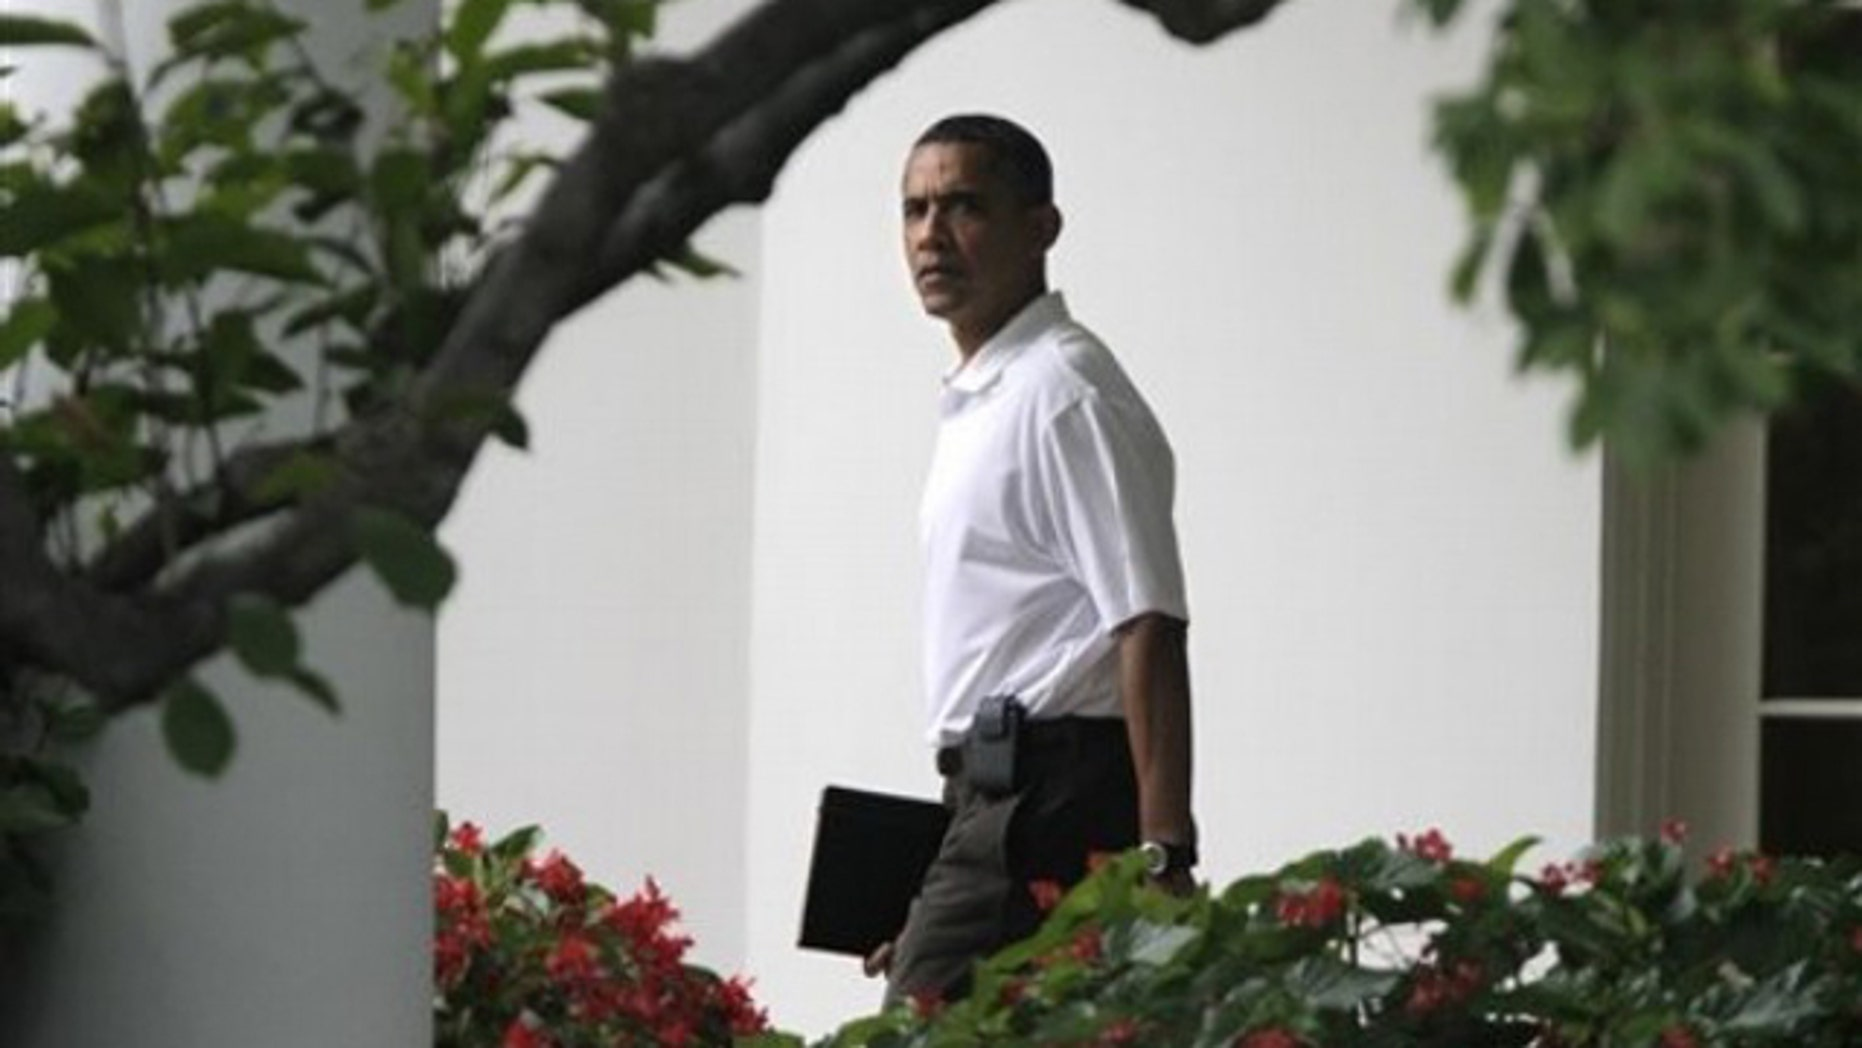 Saturday: President Obama leaves the Oval Office of the White House on his way to play golf at Andrews Air Force Base.